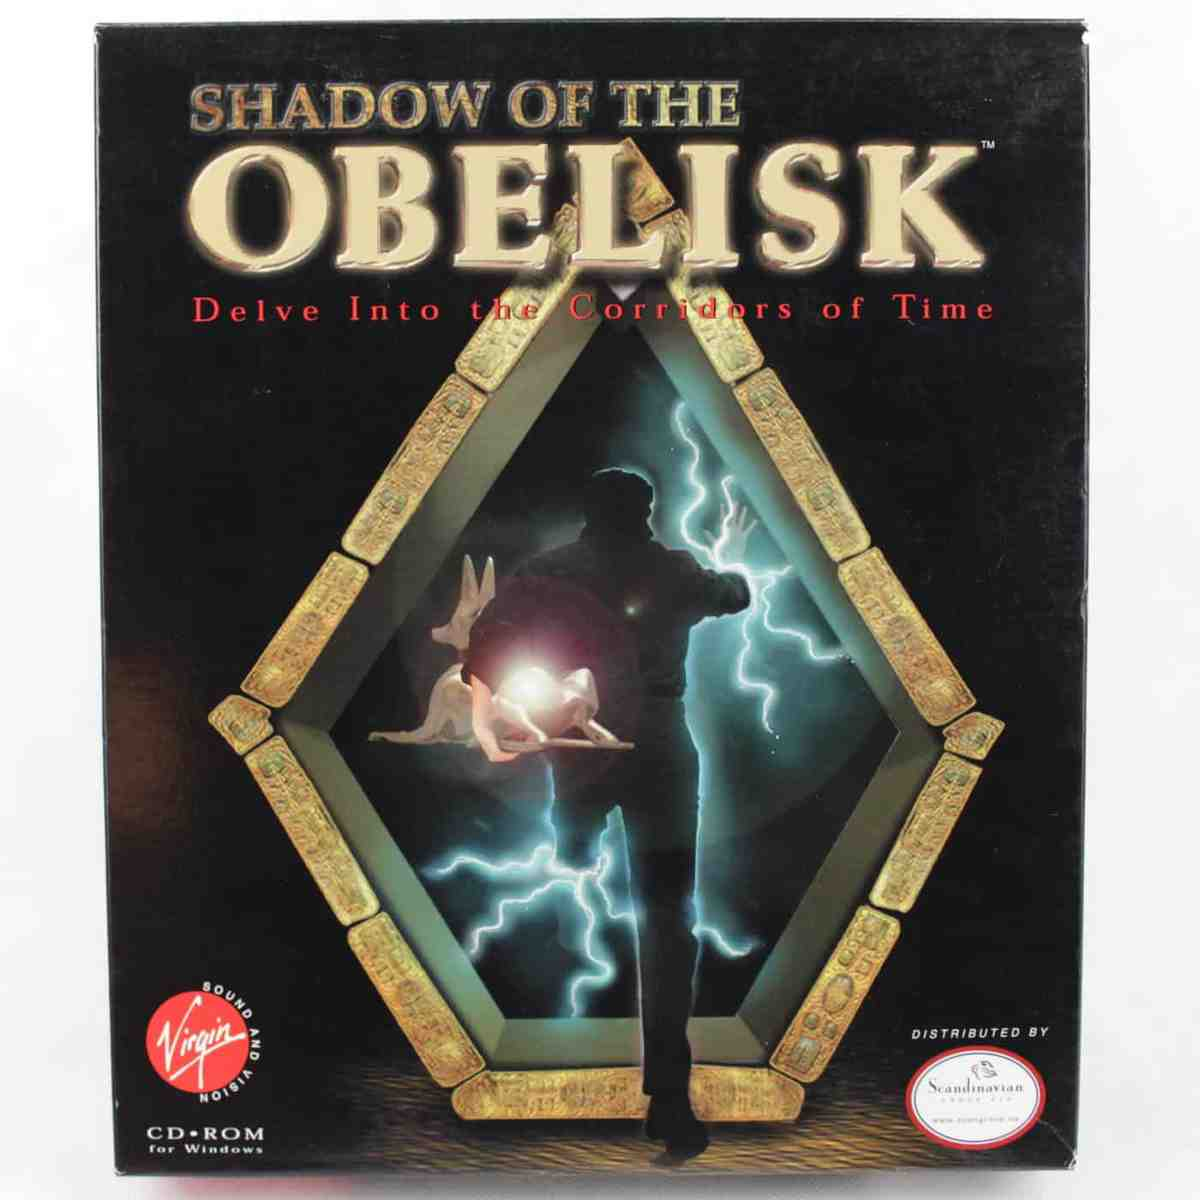 Shadow of the Obelisk a.k.a Beyond Time (PC Big Box, 1997, CD-ROM)